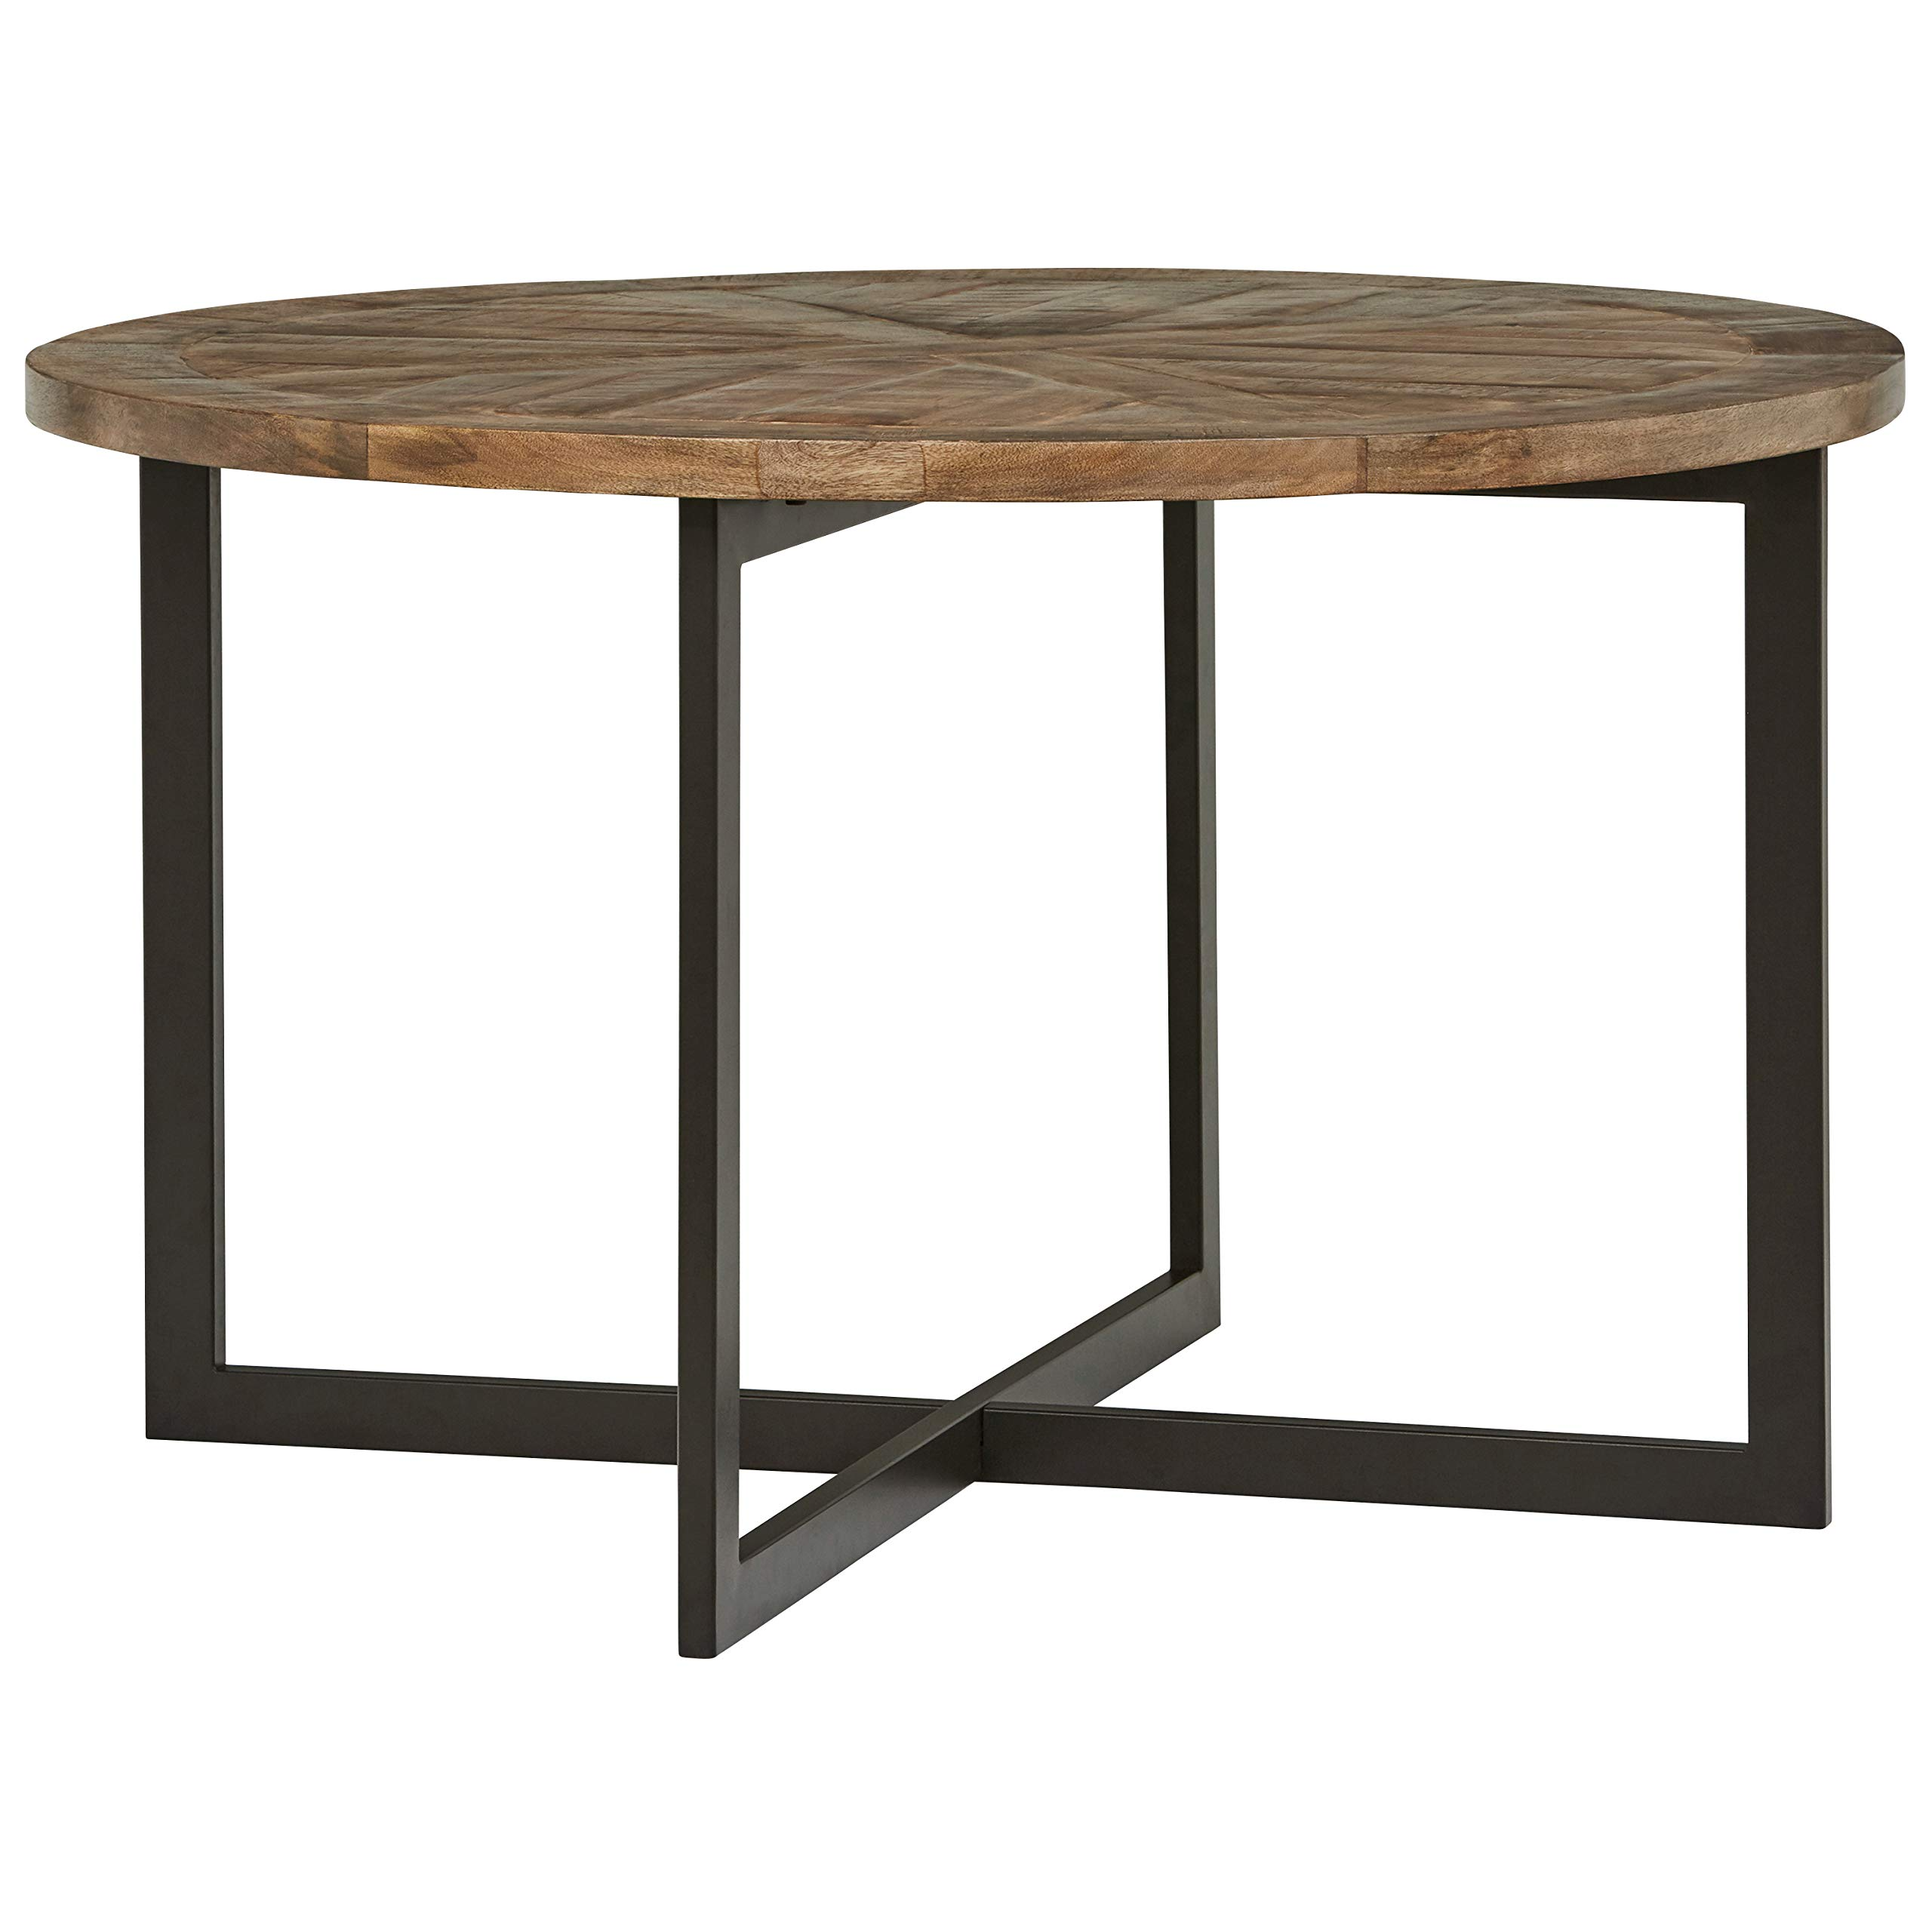 Stone & Beam Industrial Dining Table 30''H, French Onyx and Gunmetal Finish